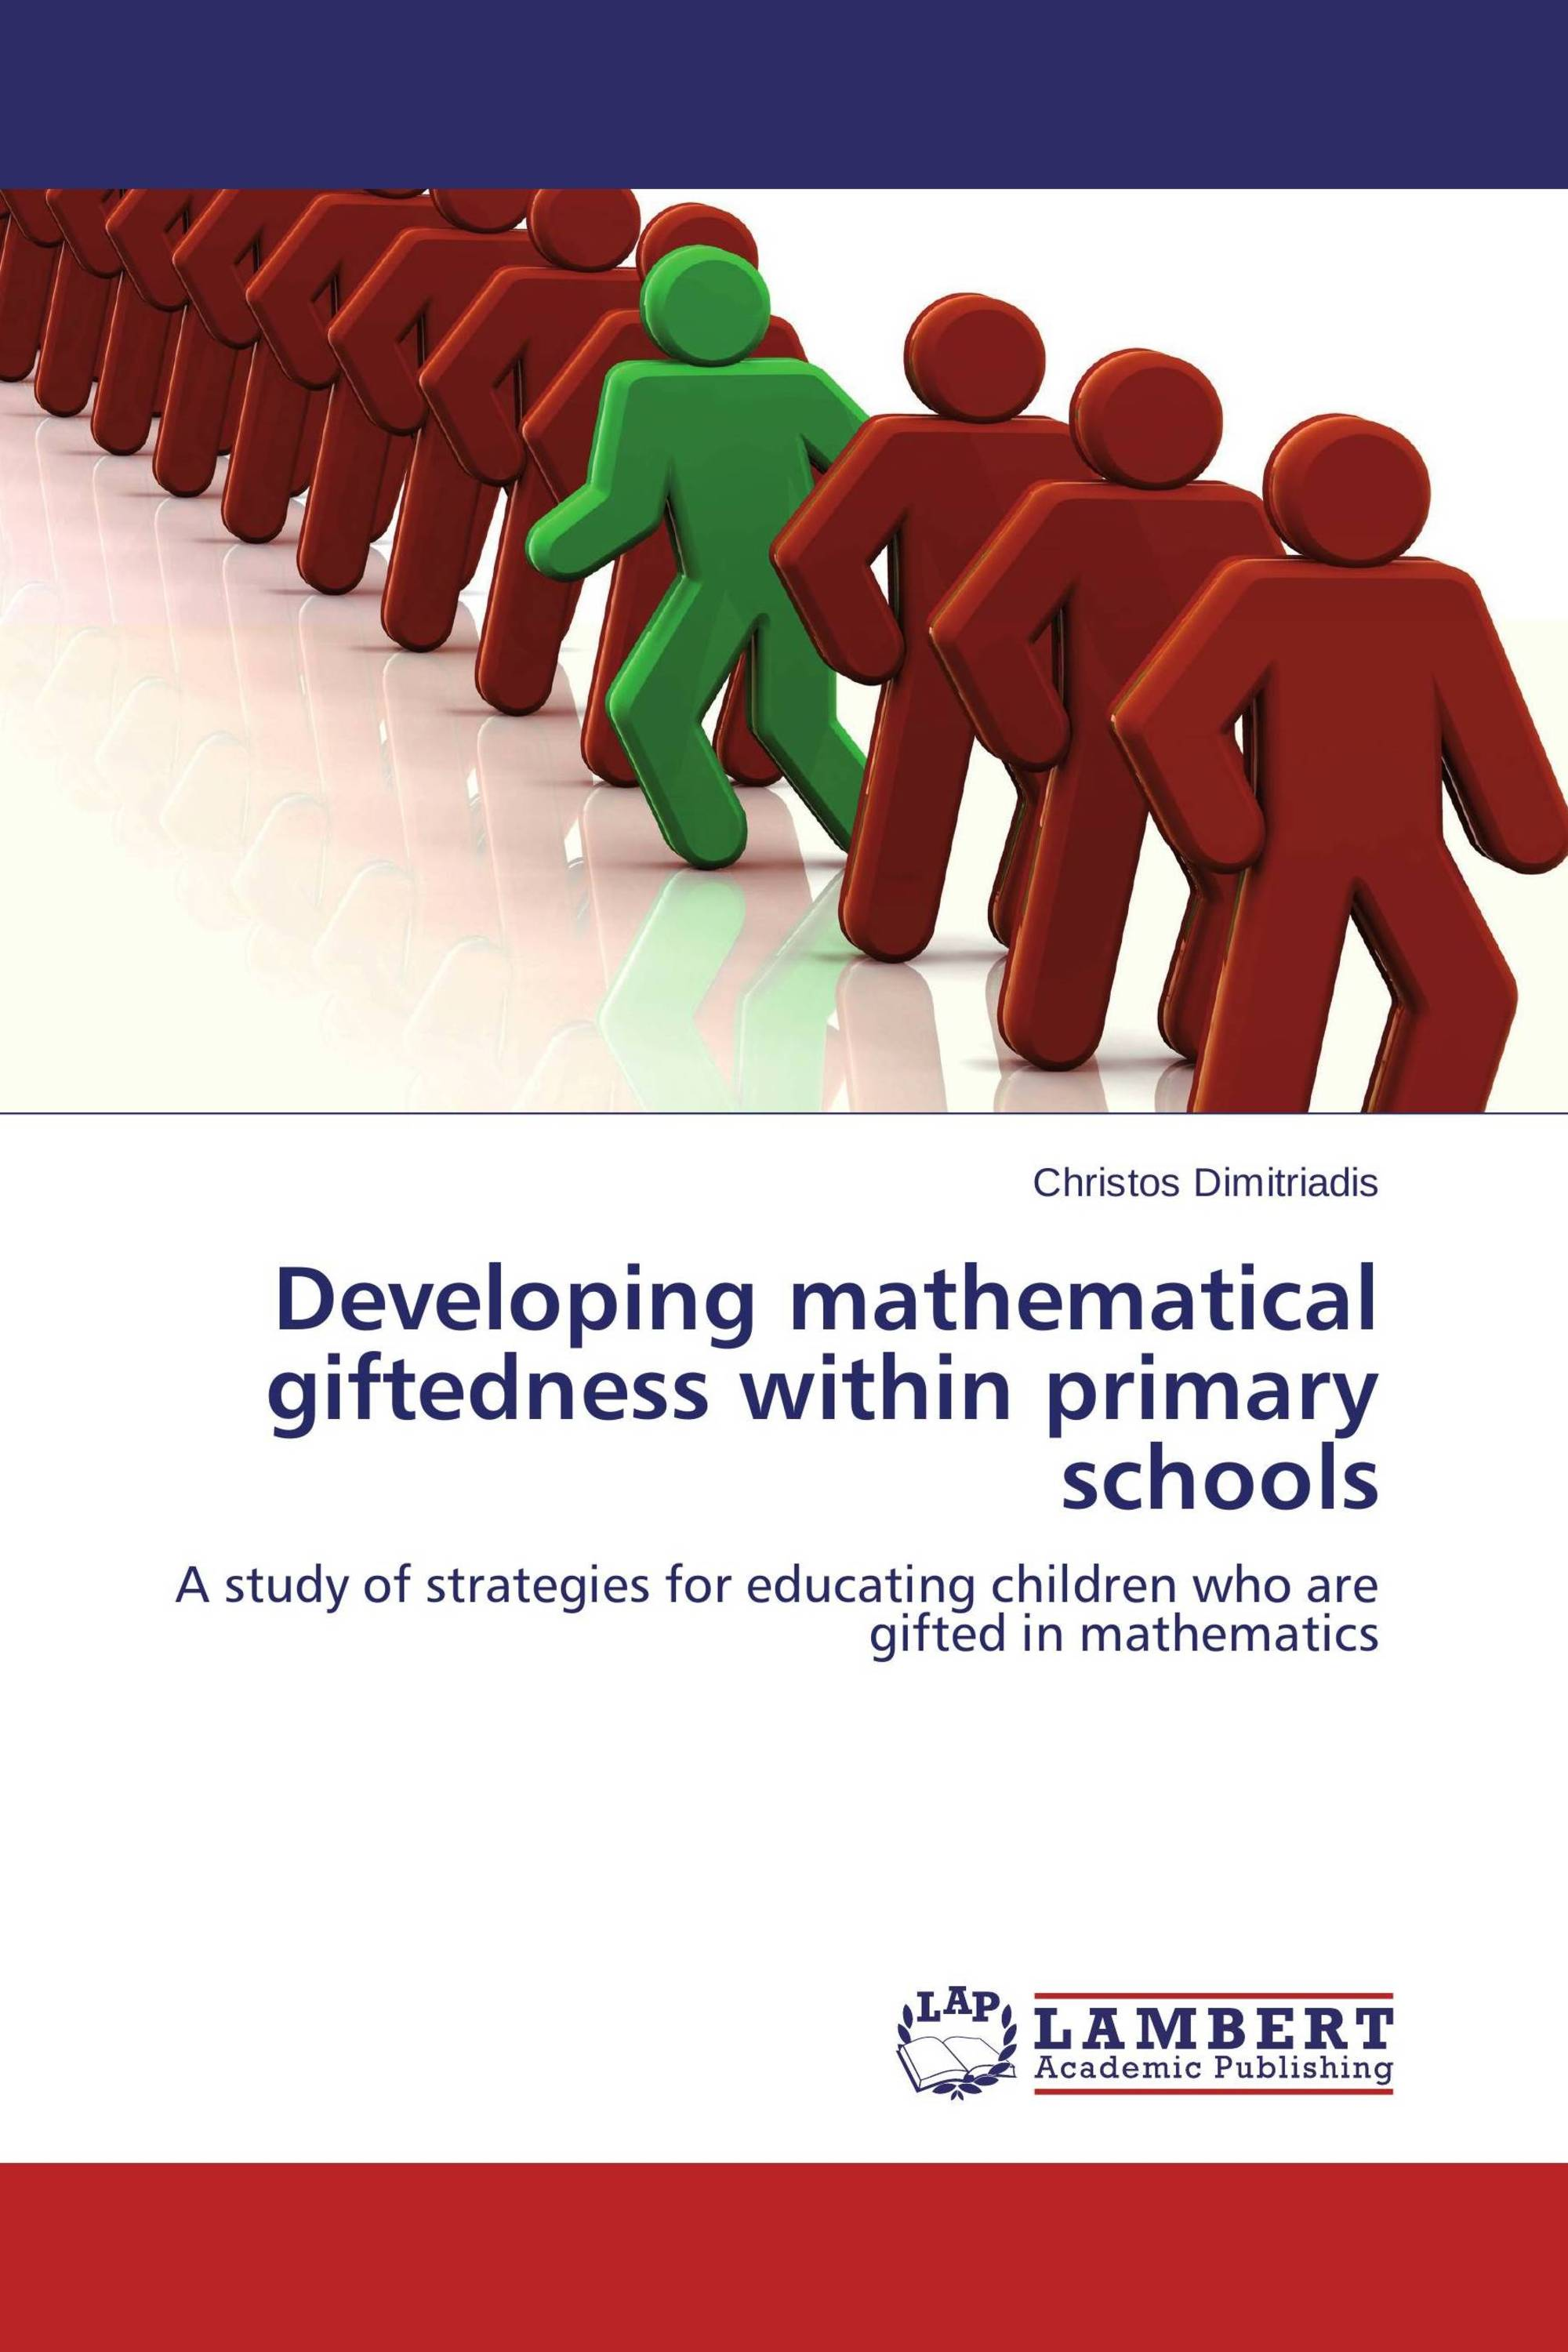 Developing mathematical giftedness within primary schools